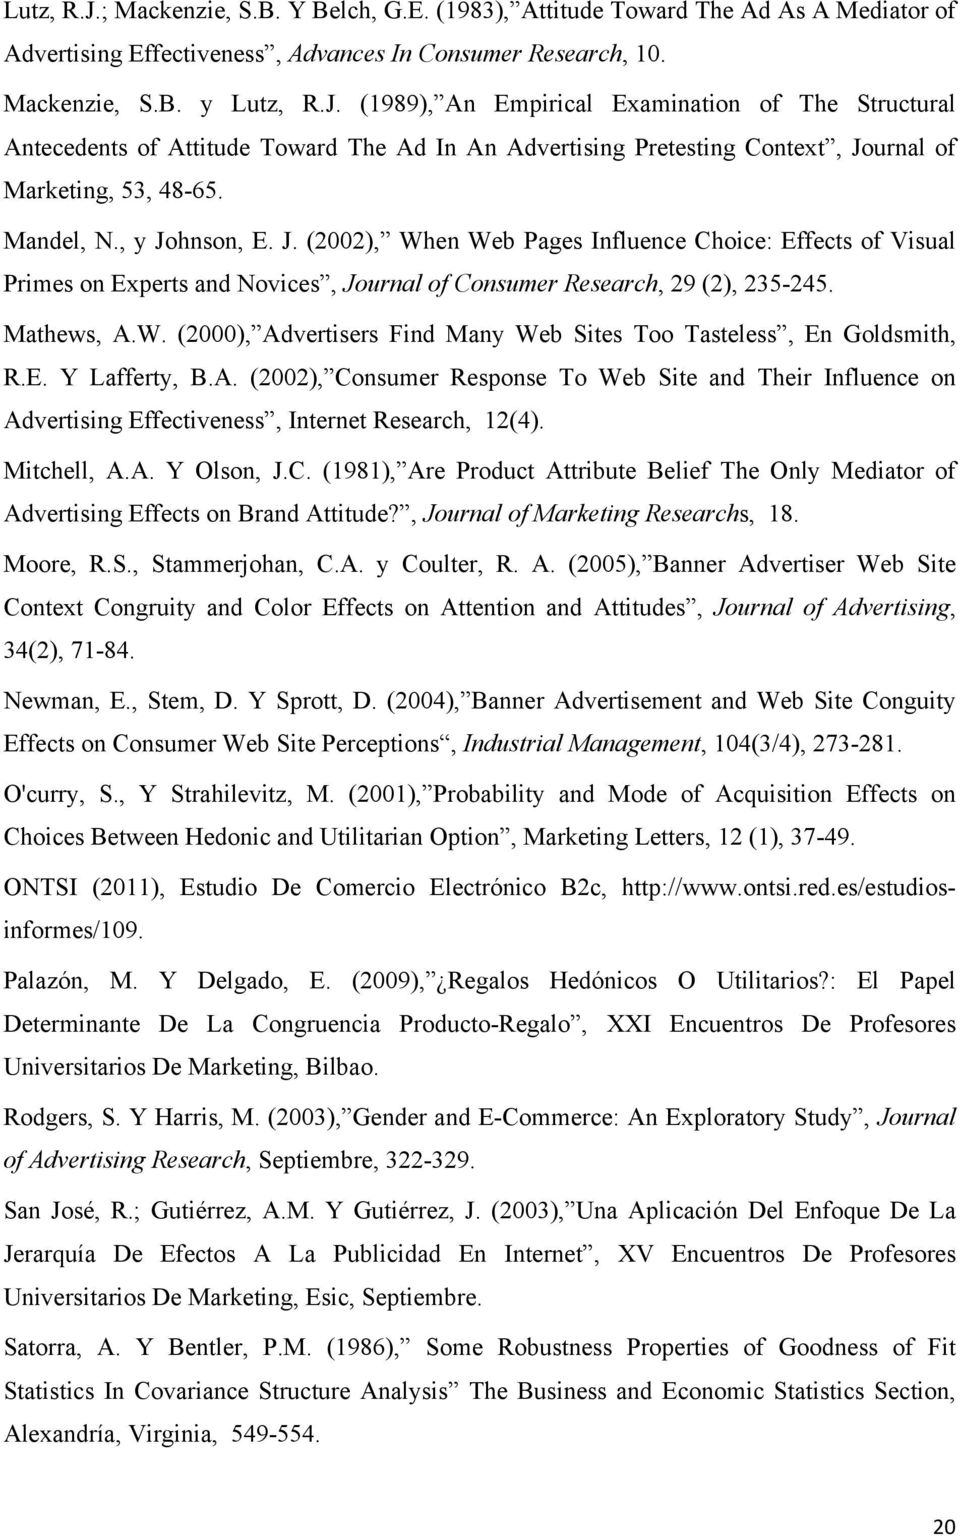 E. Y Lafferty, B.A. (2002), Consumer Response To Web Site and Their Influence on Advertising Effectiveness, Internet Research, 12(4). Mitchell, A.A. Y Olson, J.C. (1981), Are Product Attribute Belief The Only Mediator of Advertising Effects on Brand Attitude?